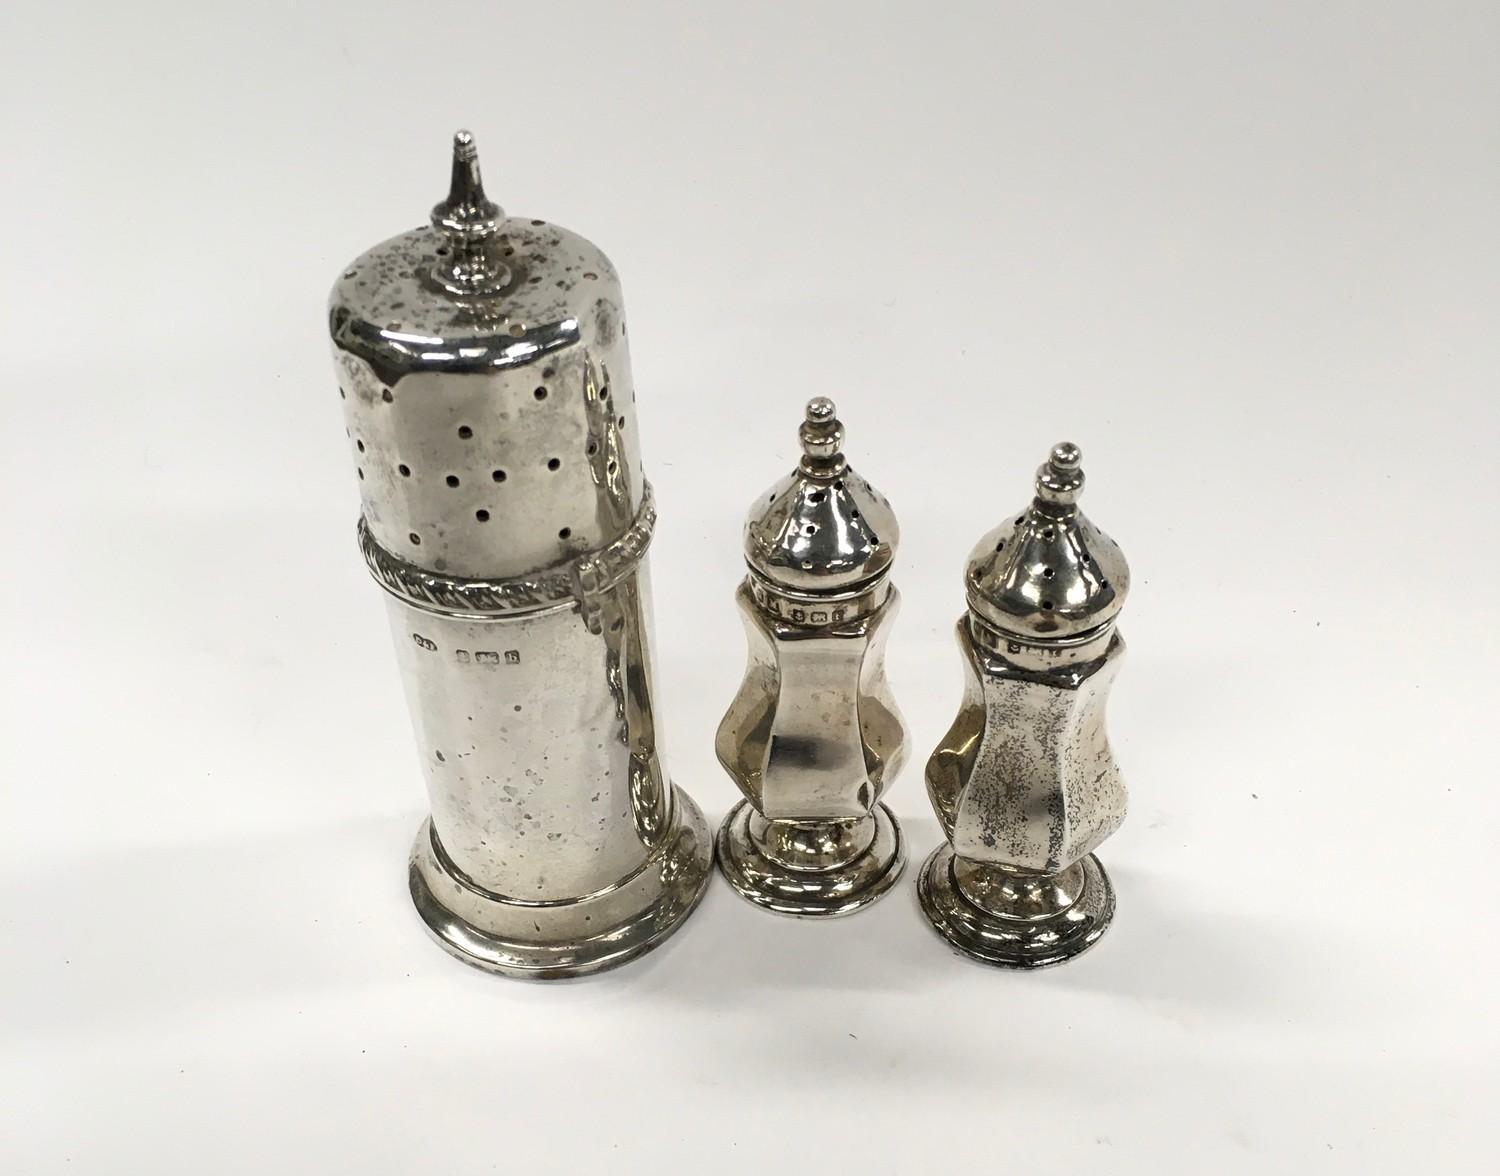 Silver Hallmarked 1901 Sugar Duster together with a Pair of Silver Hallmarked Peppers.